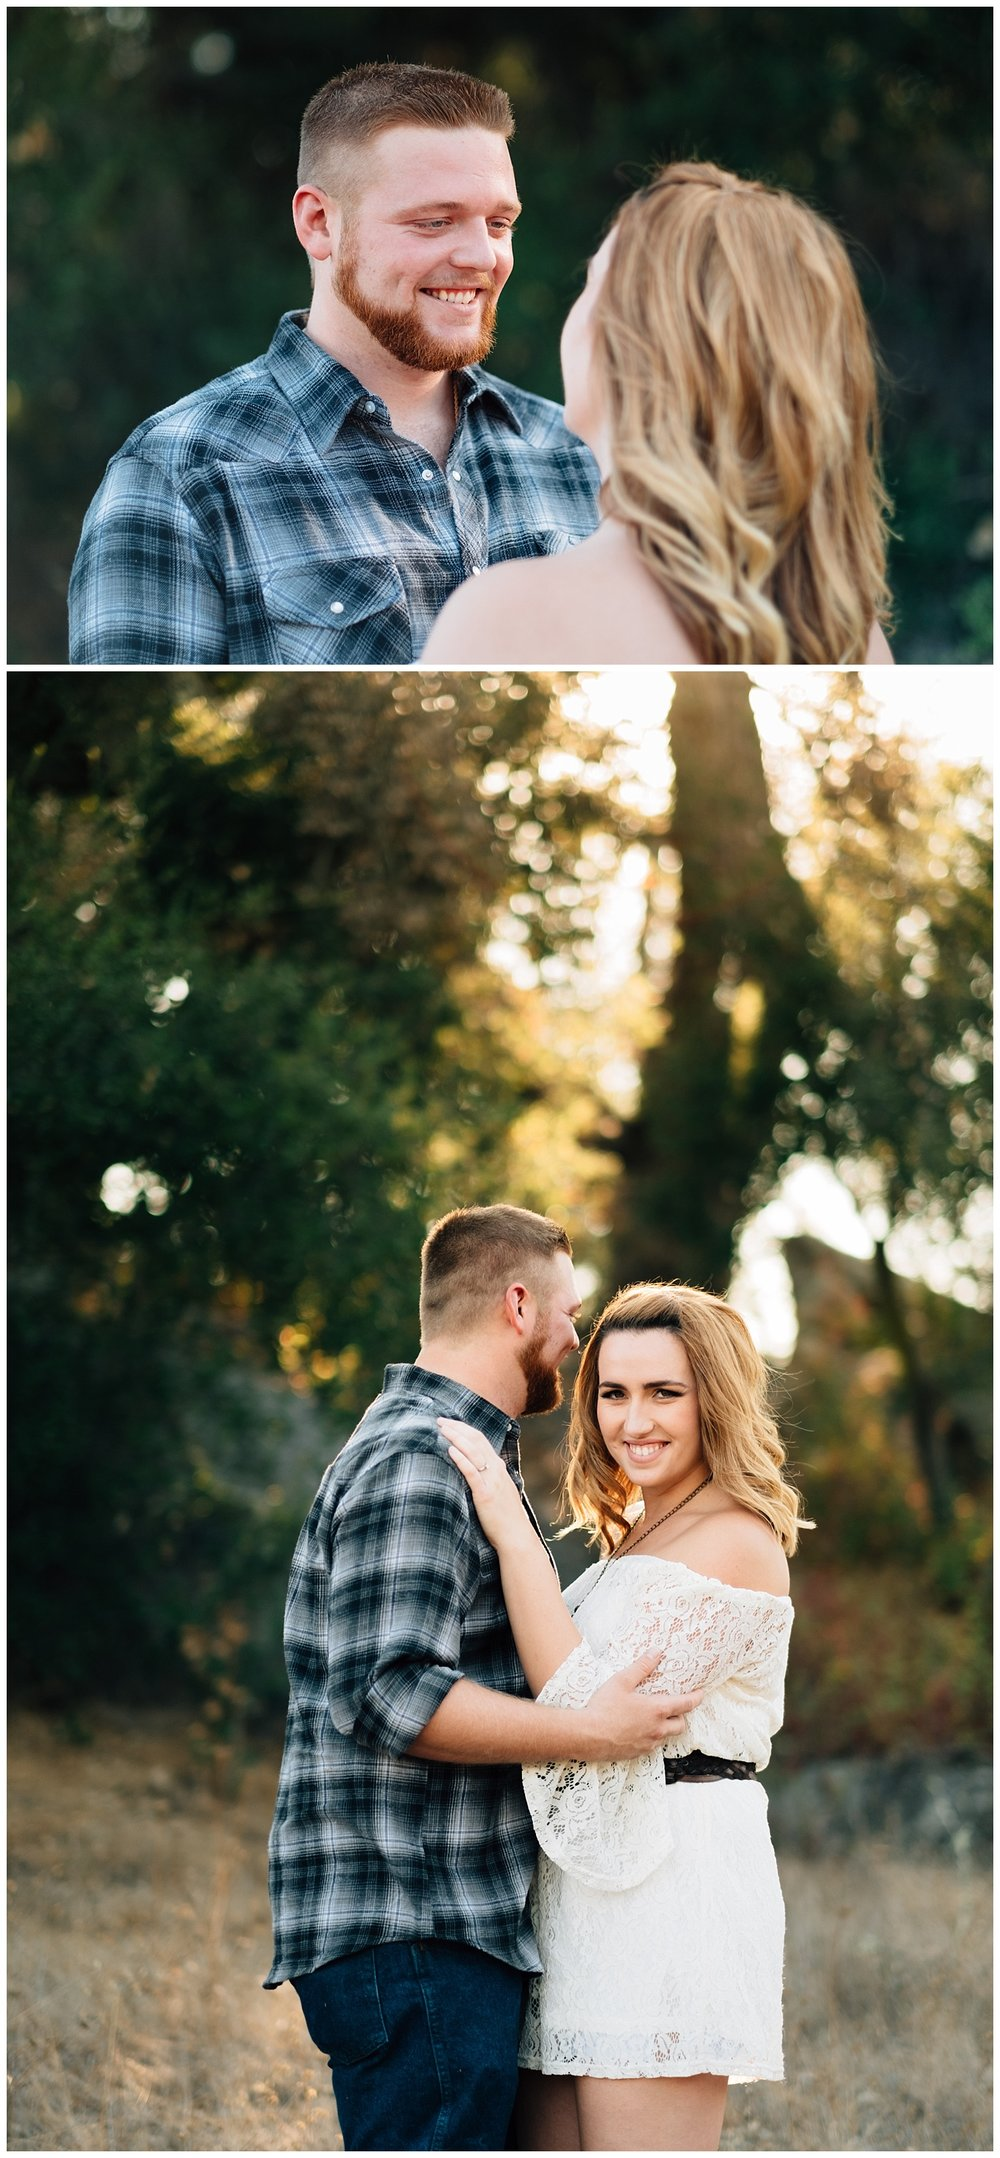 California_Country_Engagement_Session_33.jpg